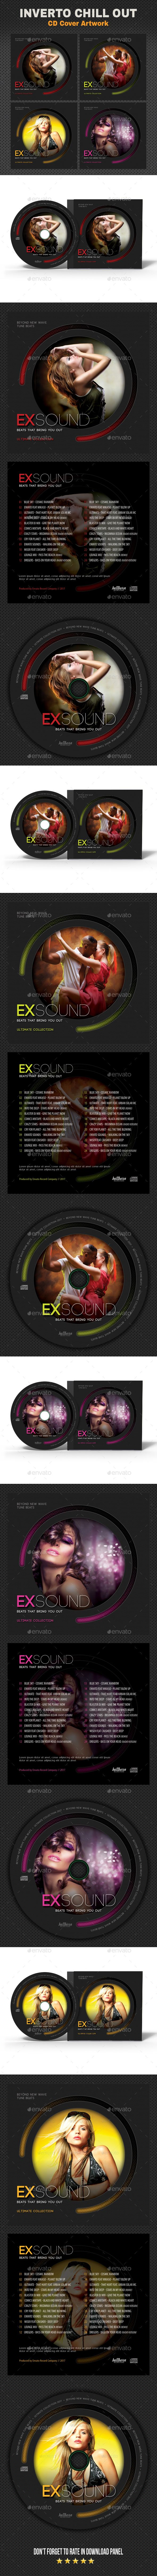 Exsound Music CD Cover Template PSD